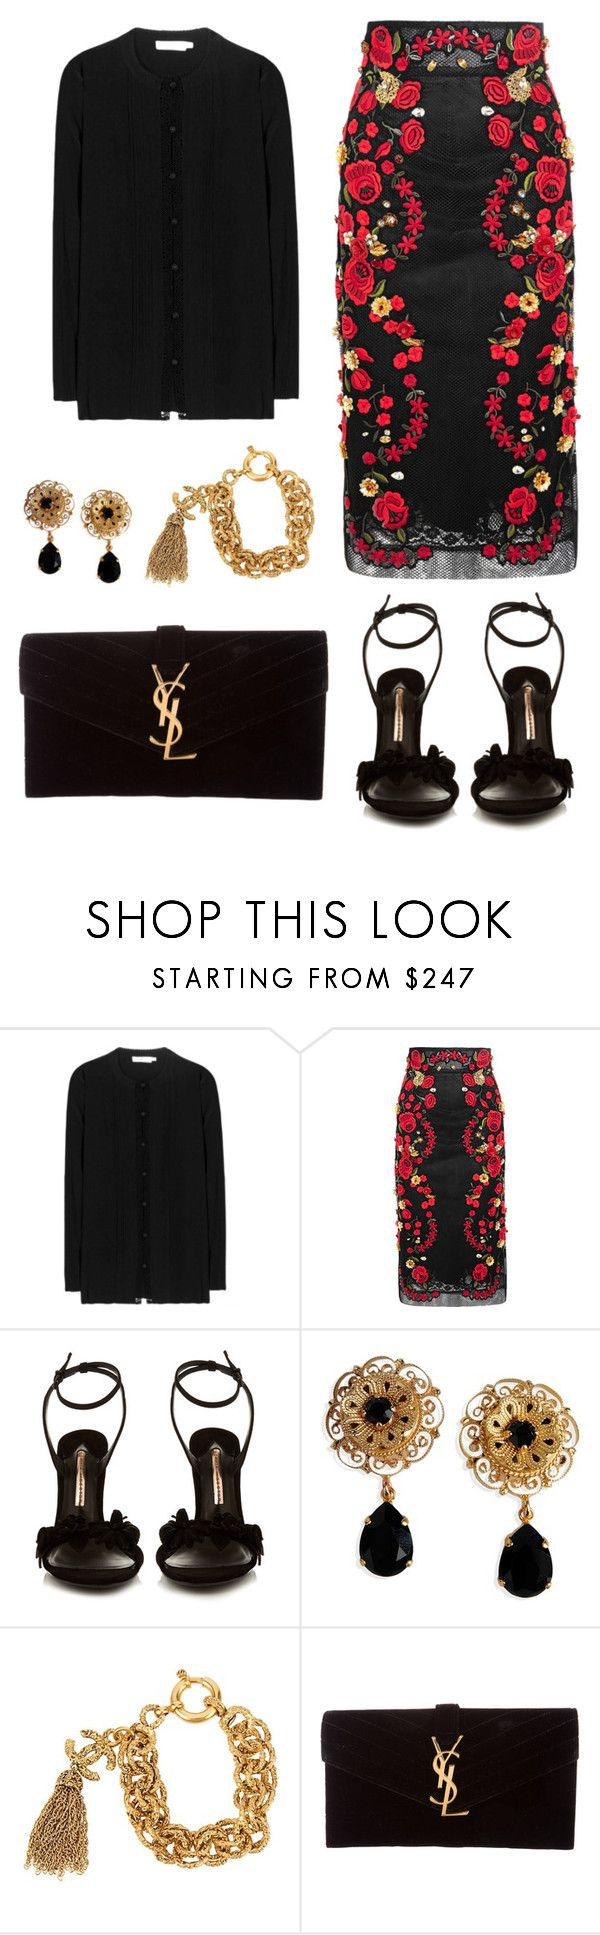 """""""Untitled #16"""" by tugces ❤ liked on Polyvore featuring Tory Burch, Dolce&Gabbana, Sophia Webster, Chanel and Yves Saint Laurent"""